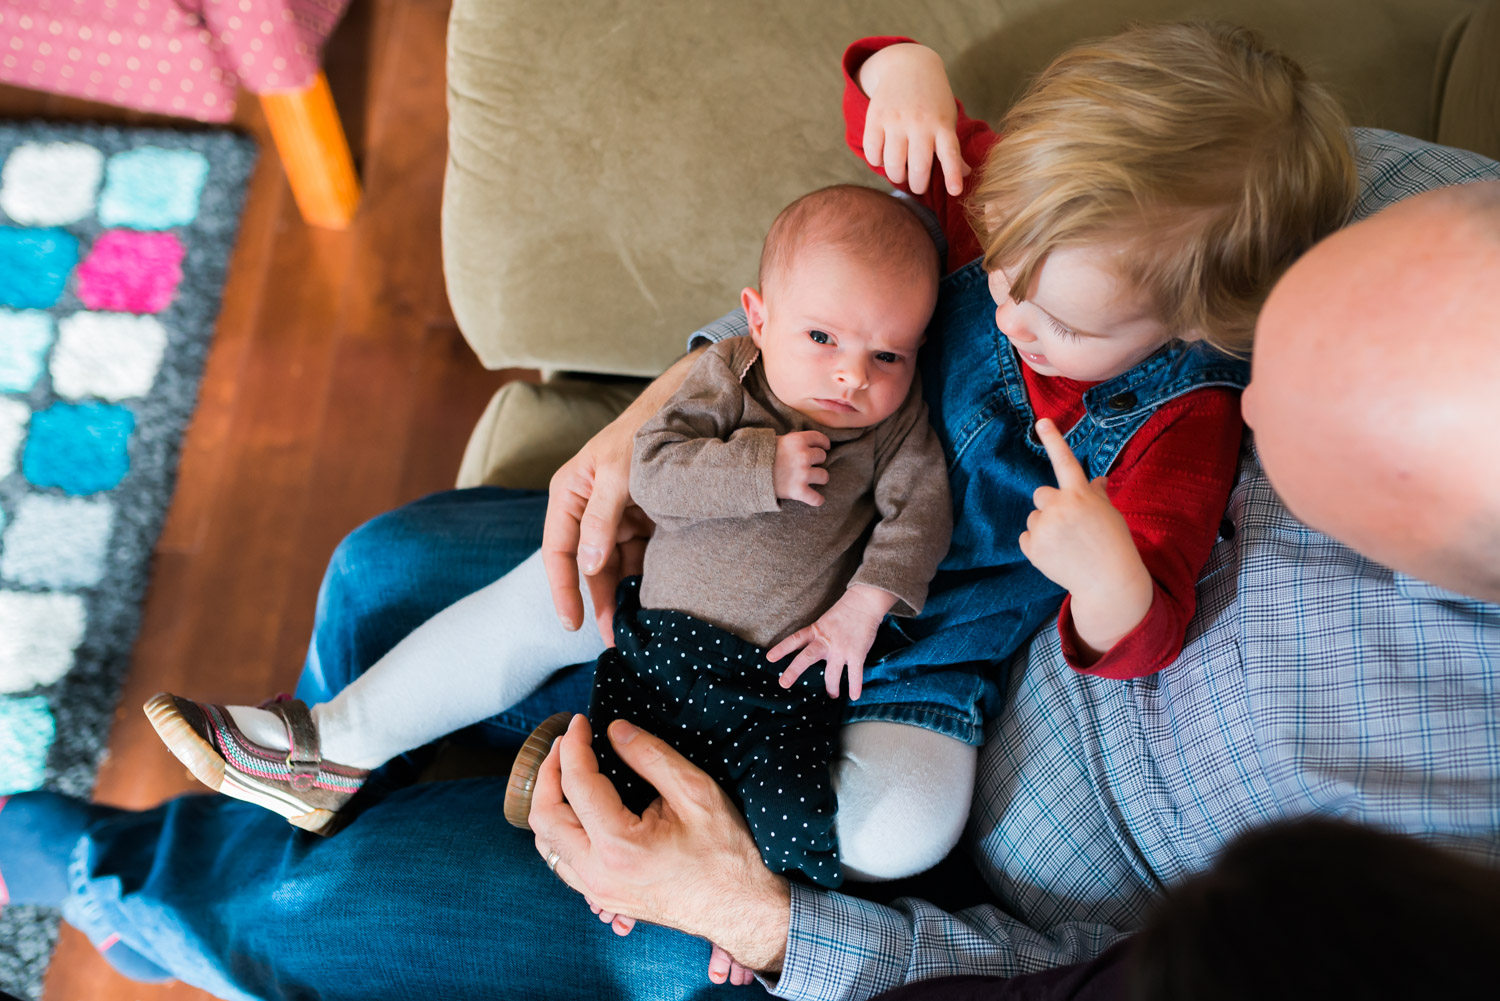 Big sister with newborn baby sister on couch during lifestyle session